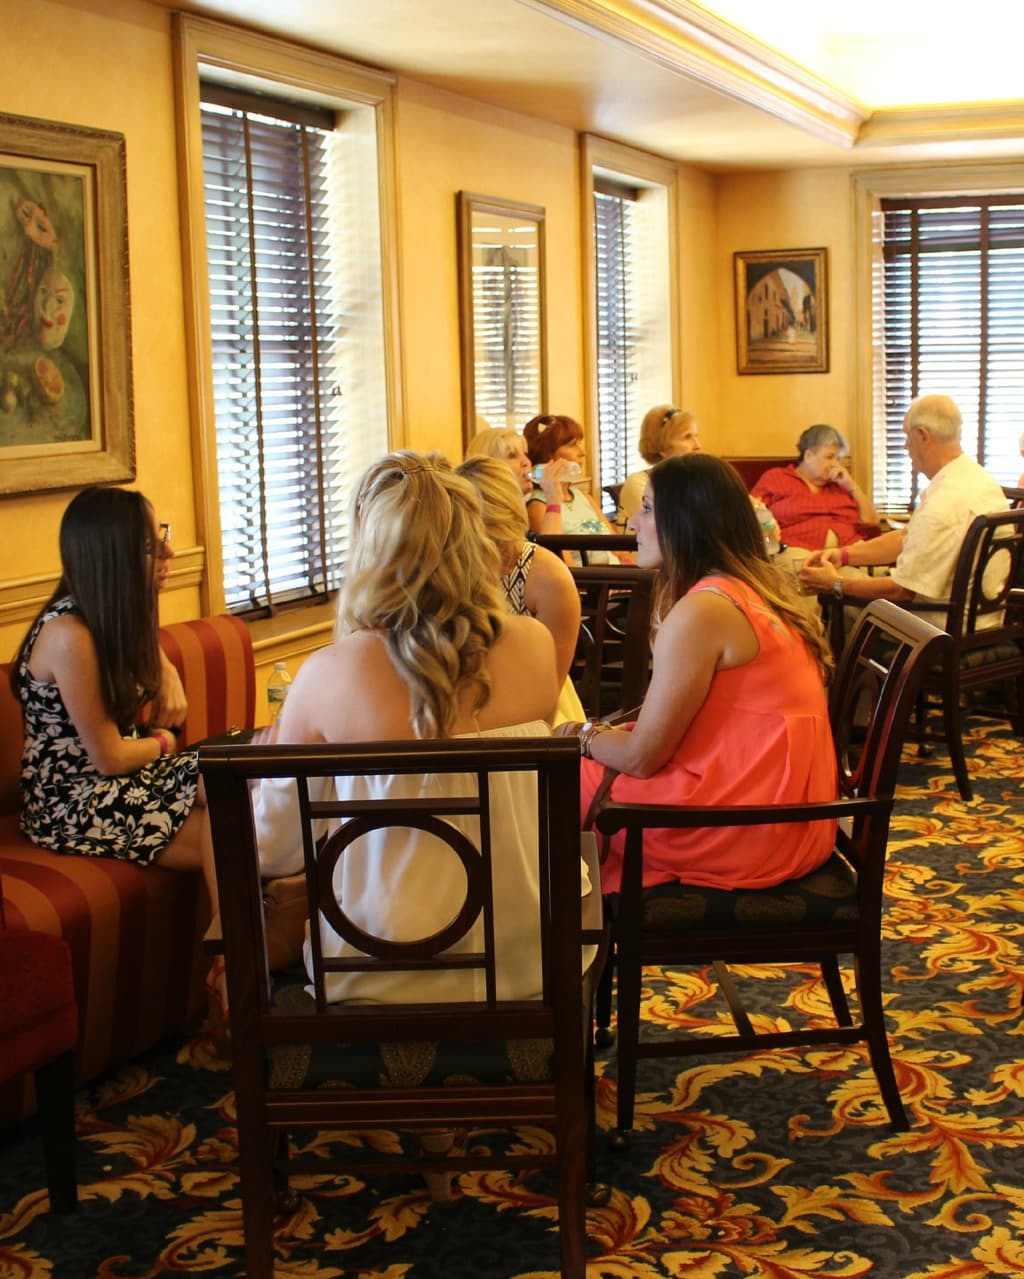 The Taste of Downtown event at the Sarasota Opera House benefitted the Sarasota Youth Opera